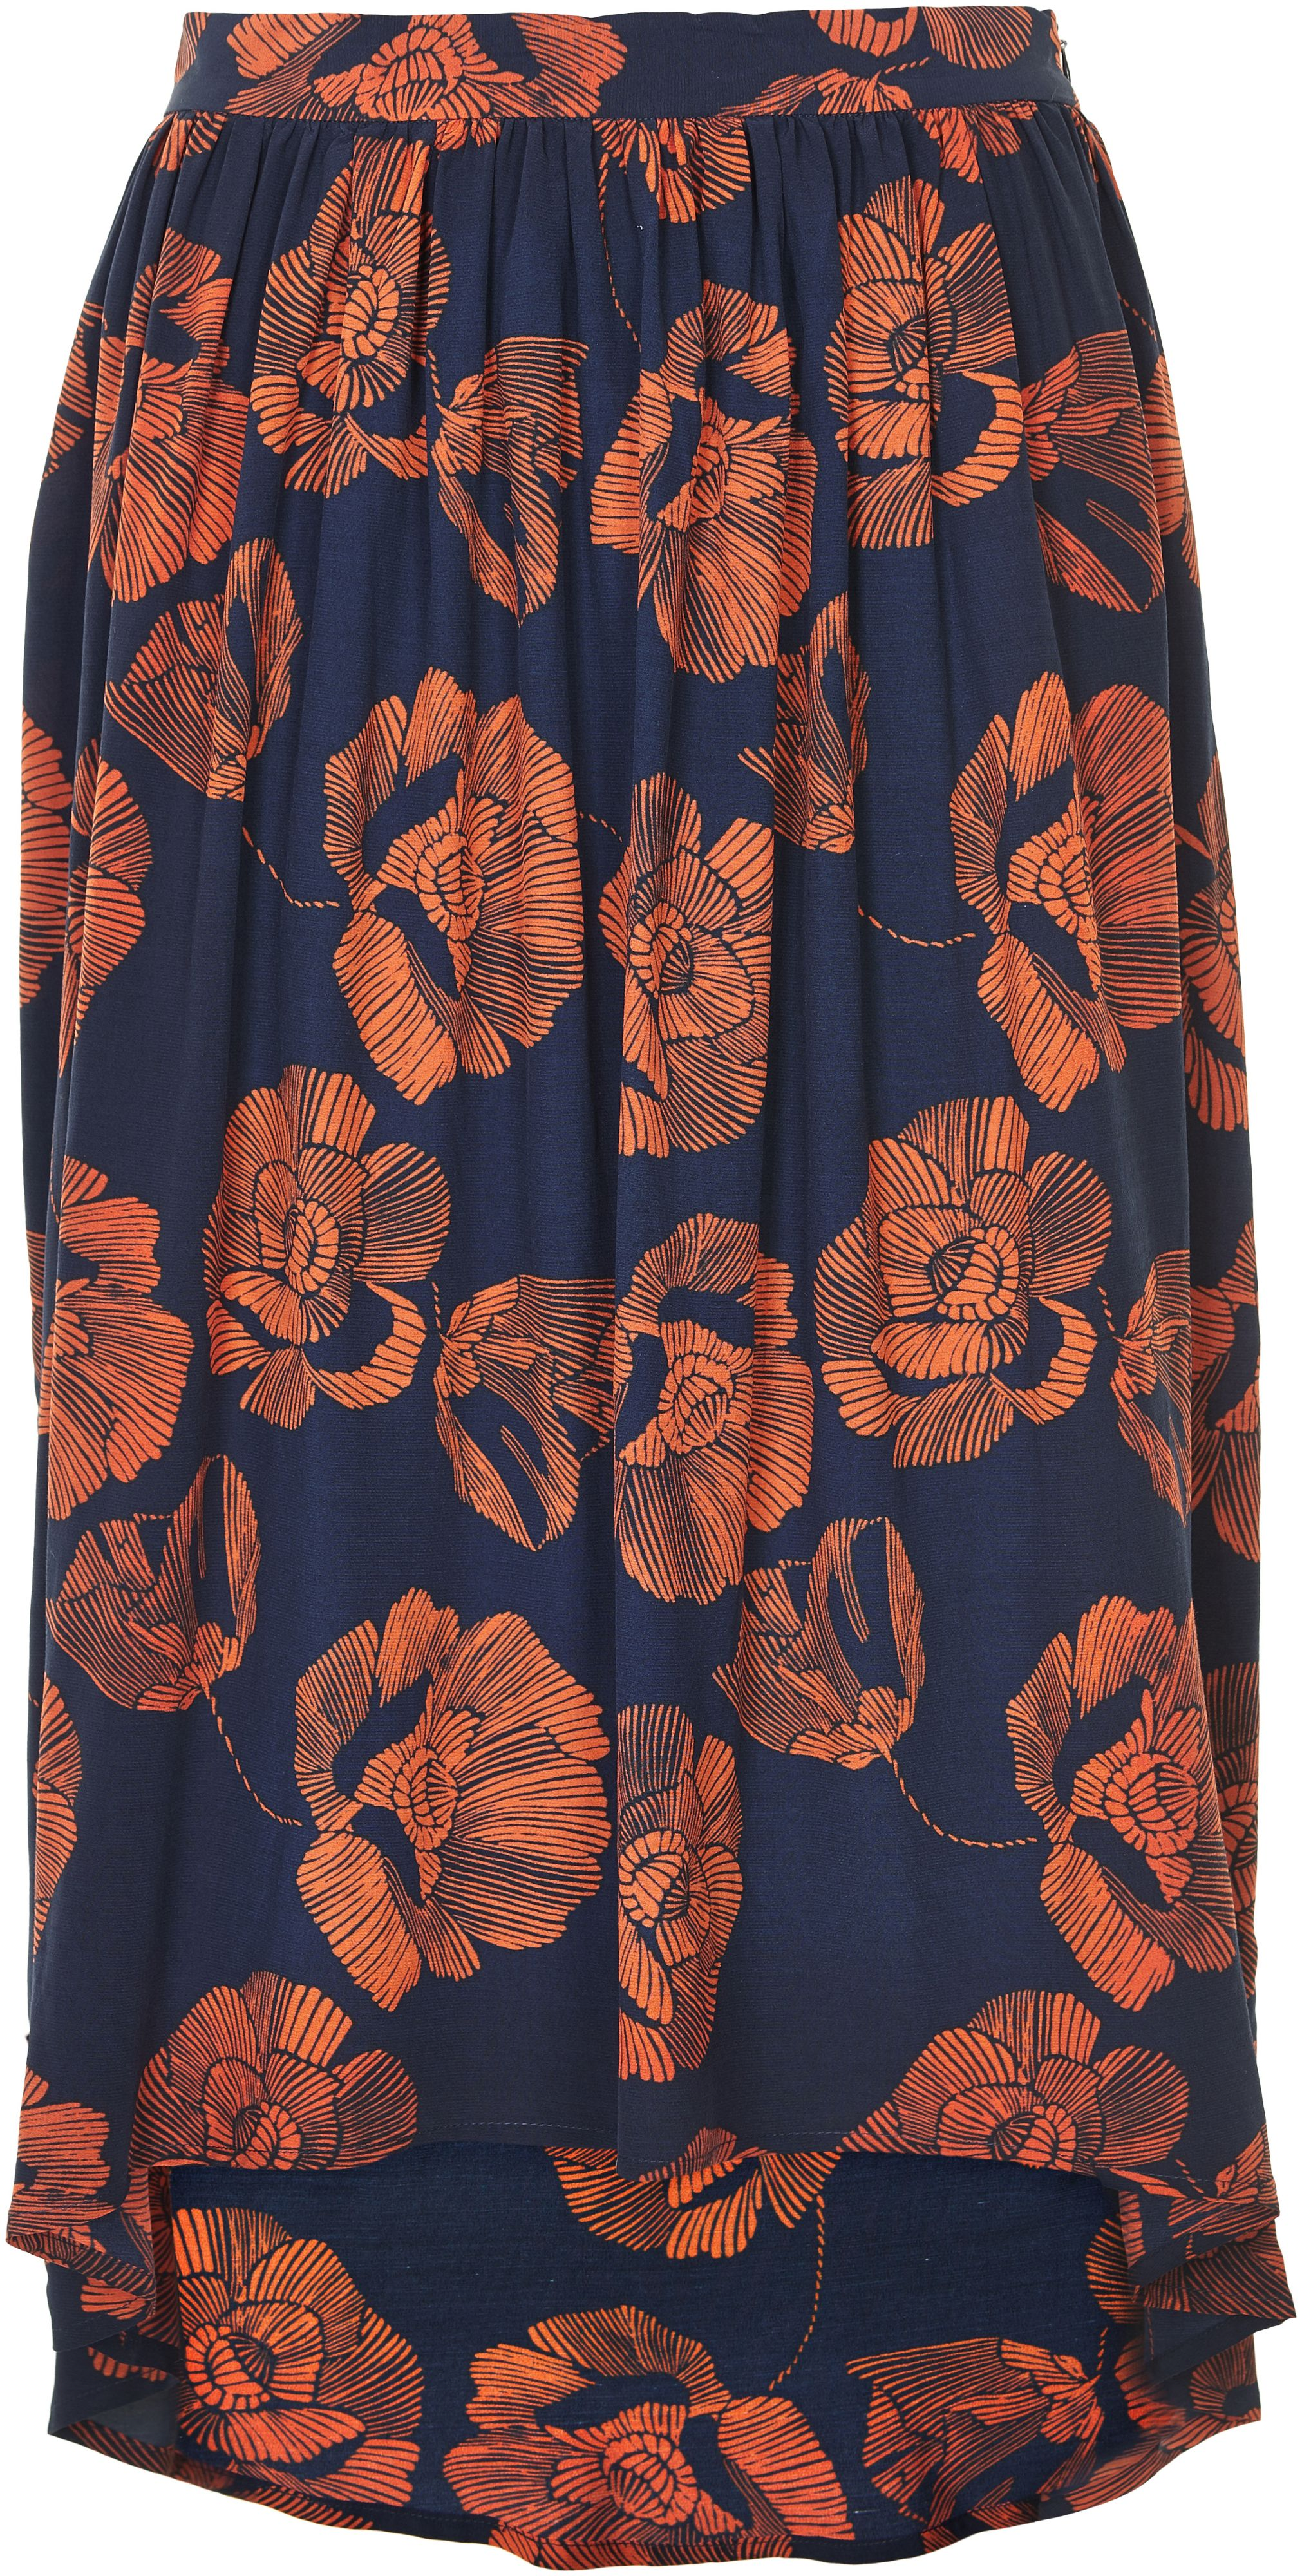 Soaked in Luxury Soaked in Luxury Floral Print Midi Skirt, Multi-Coloured